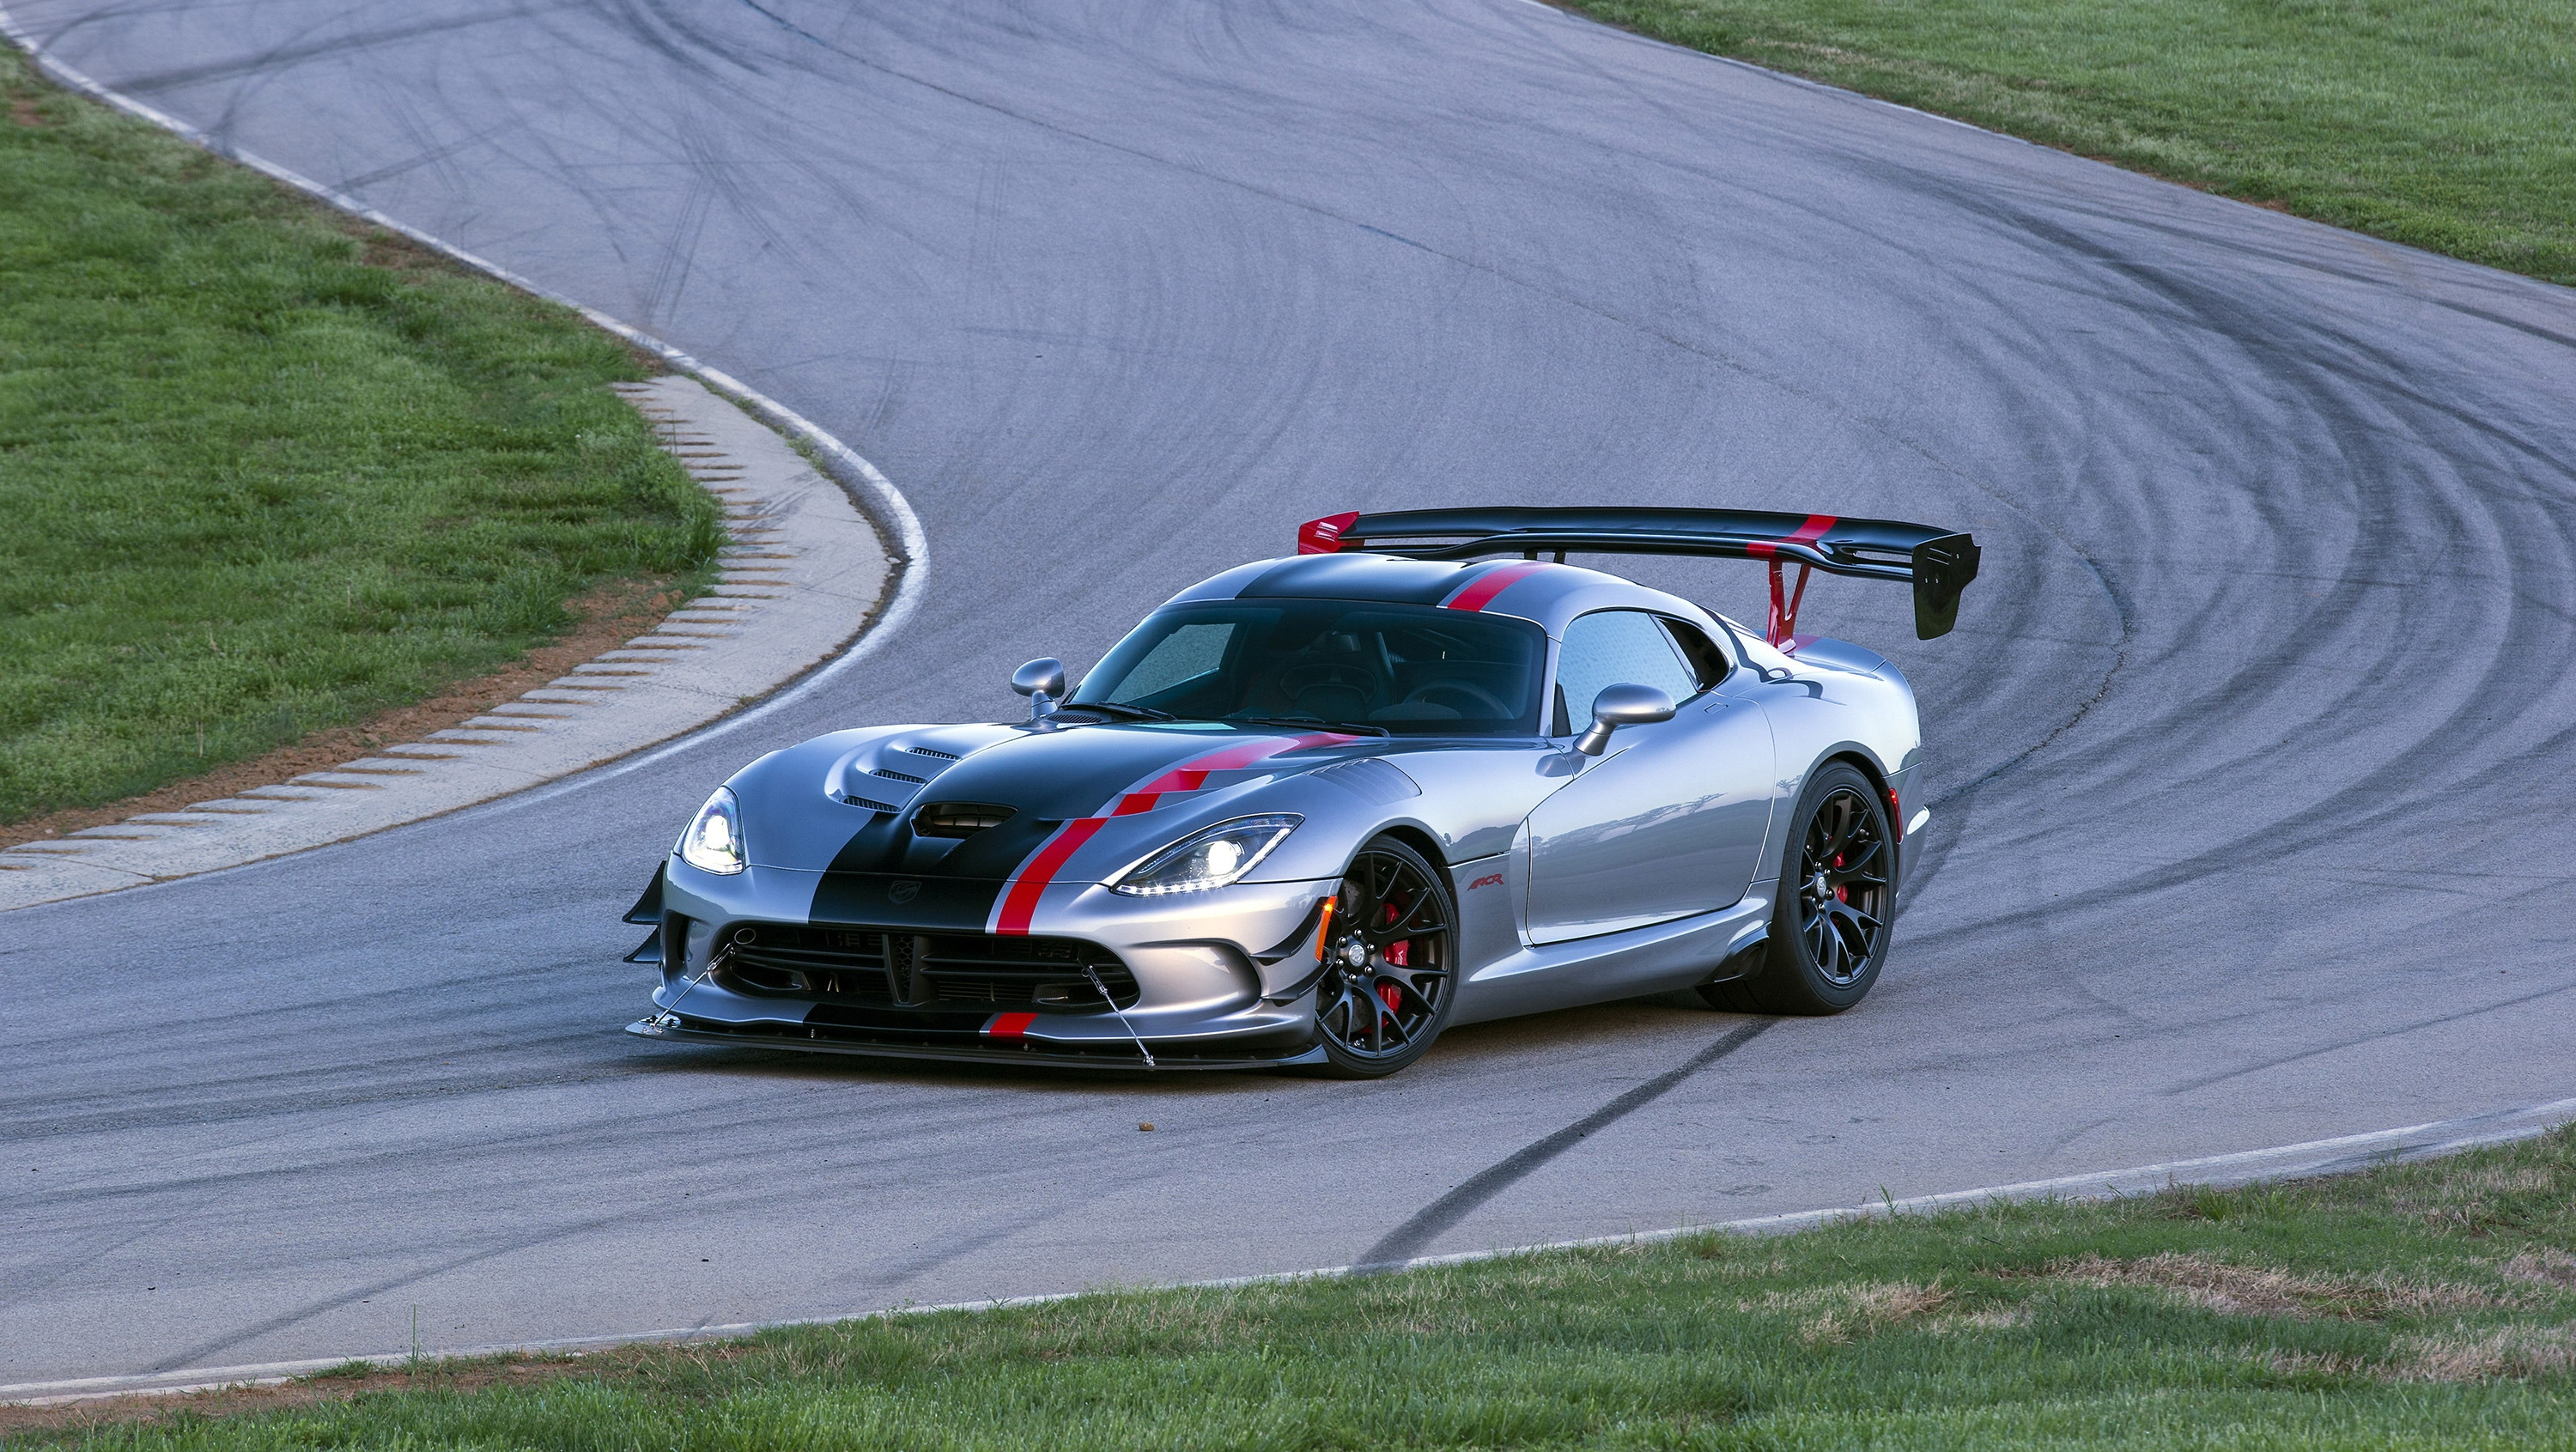 dodge viper acr 39 s quest for nurburgring glory still falls short picture top speed. Black Bedroom Furniture Sets. Home Design Ideas